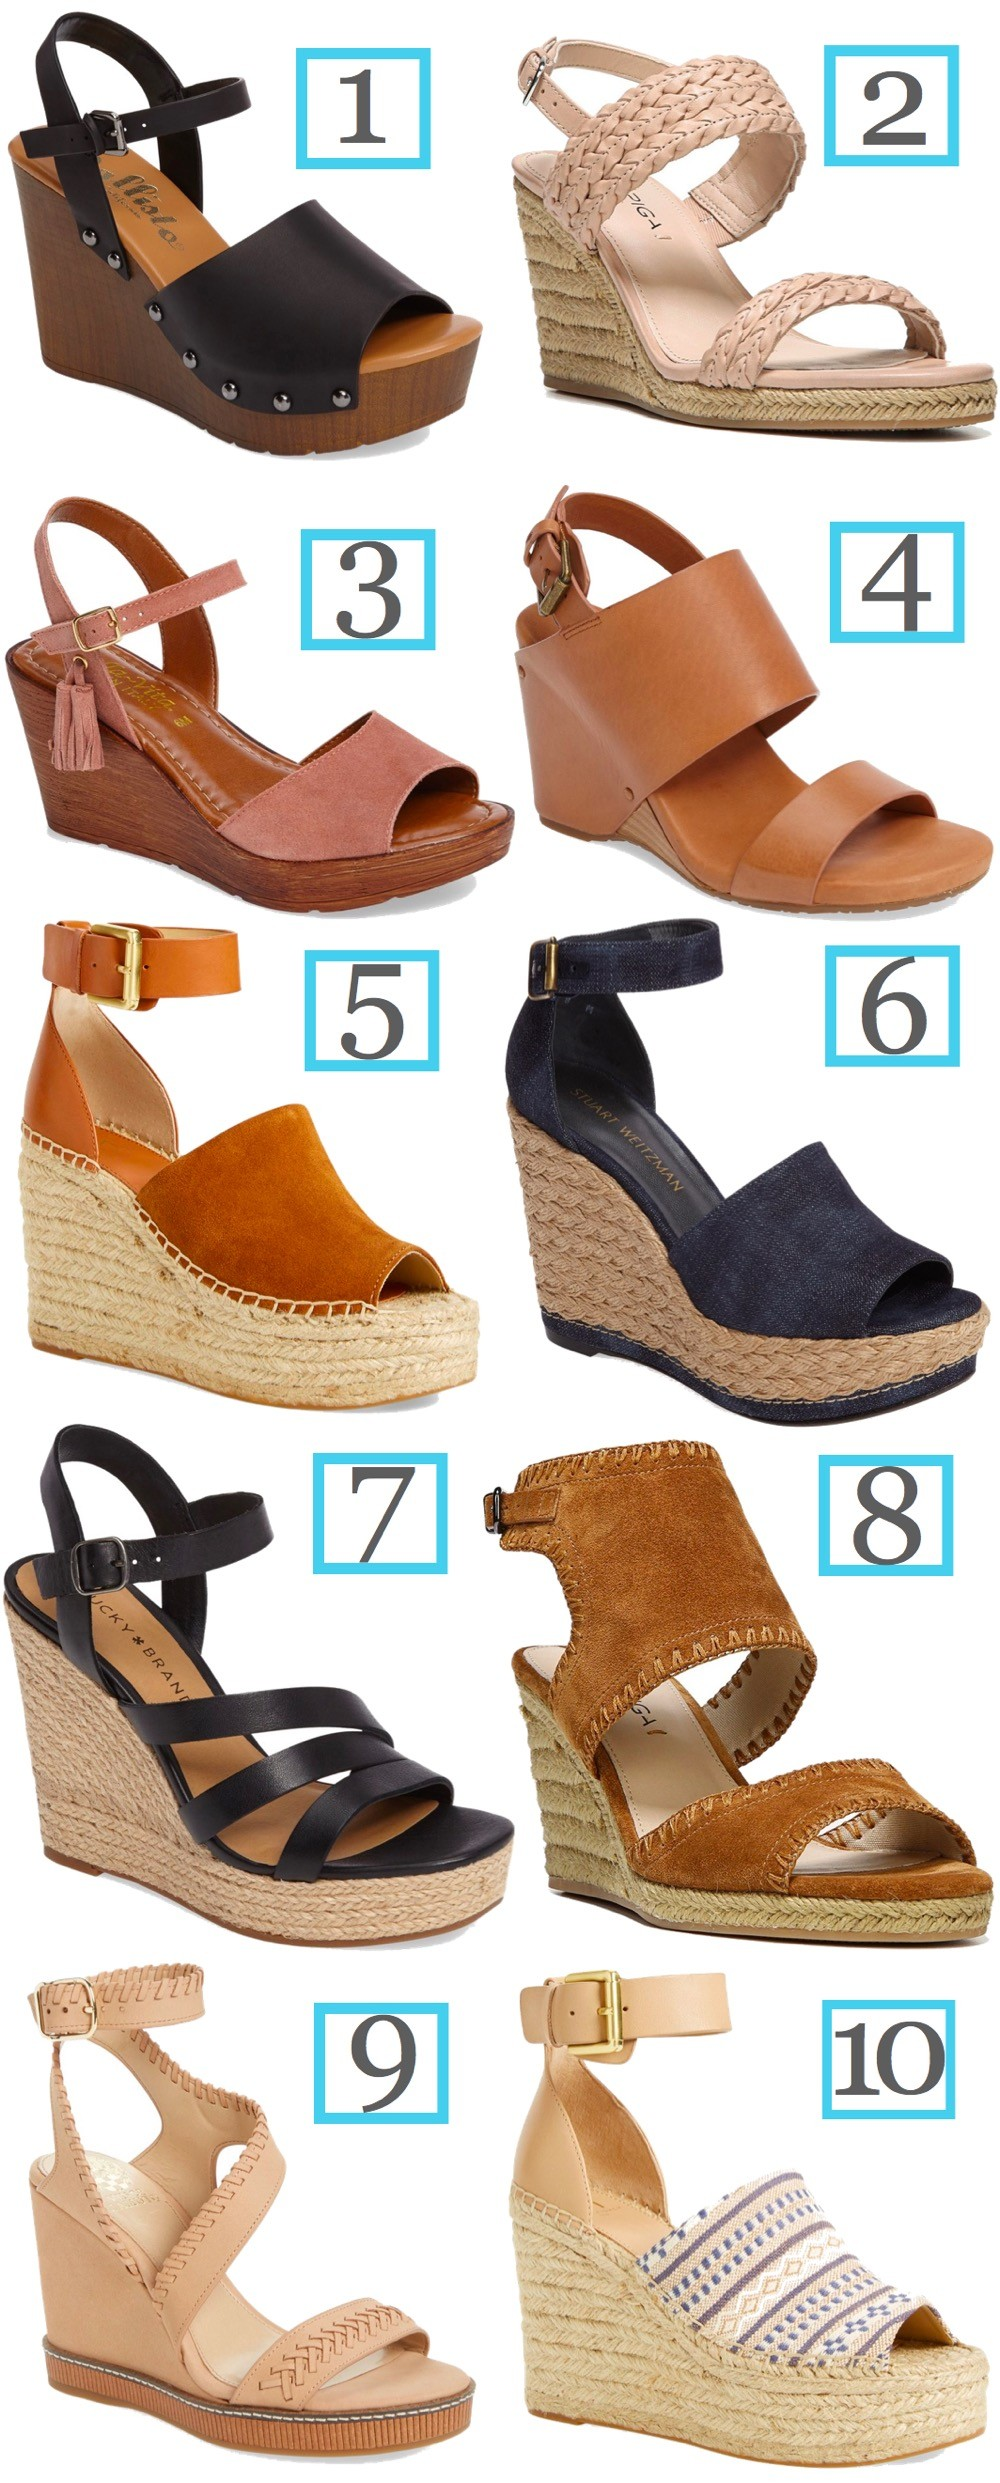 get cheap special for shoe sports shoes Cute, Comfortable Wedge Sandals Roundup | Luci's Morsels